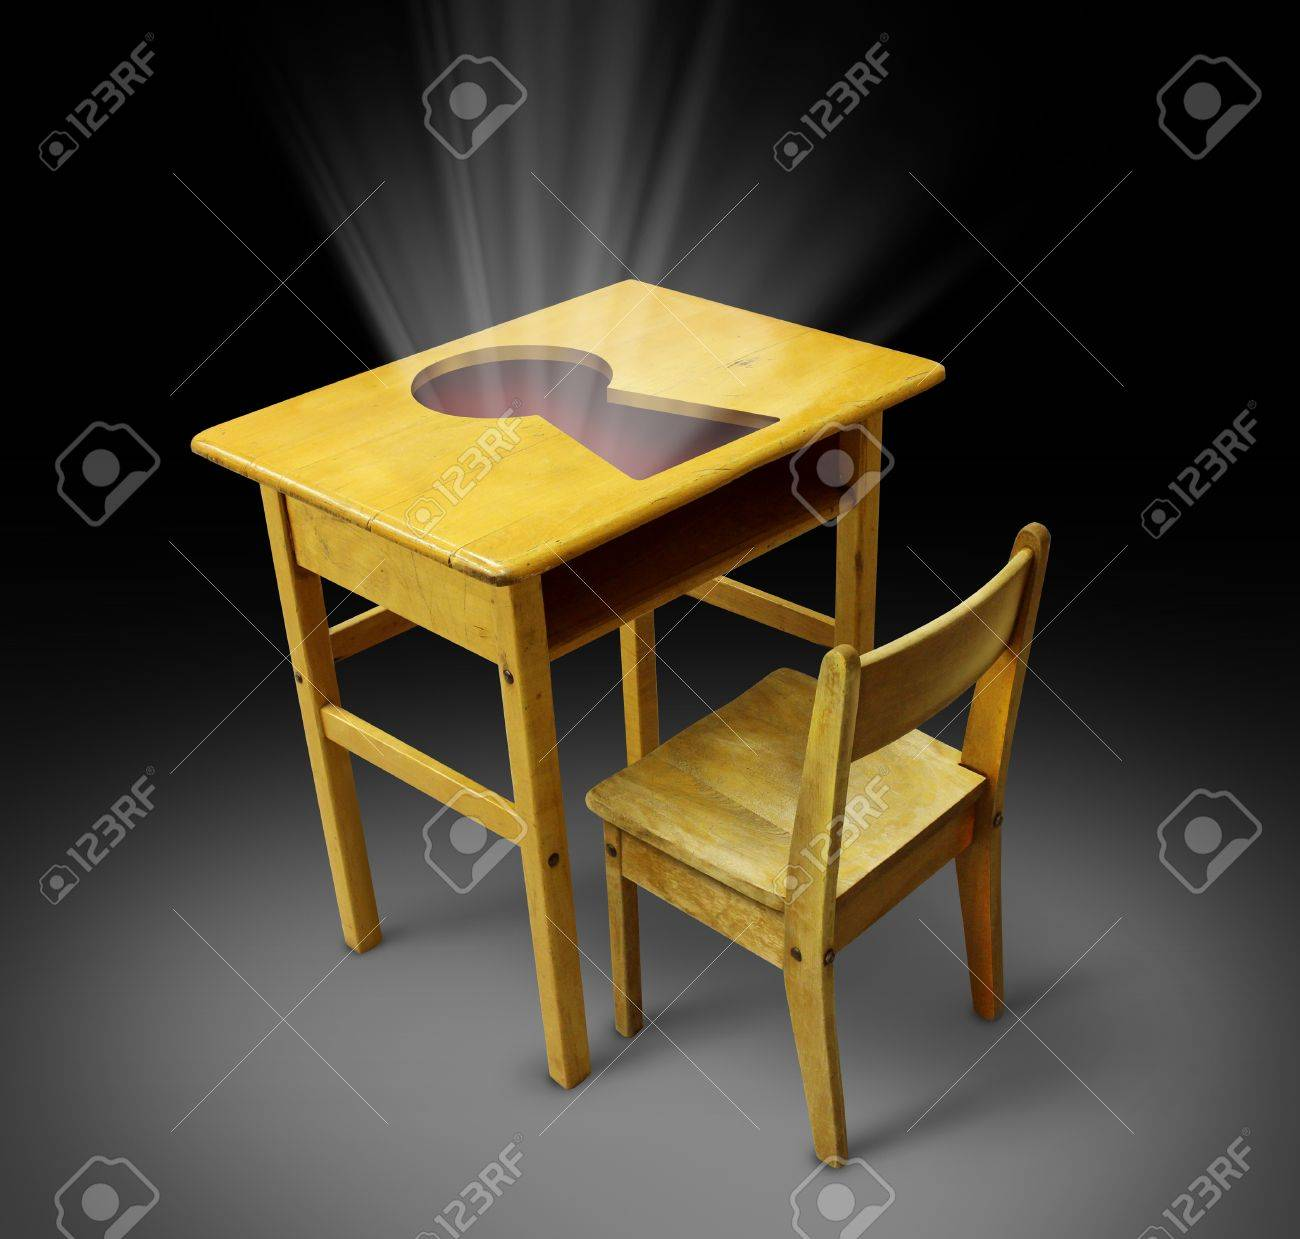 Key To Education Concept With An Old School Desk And Student